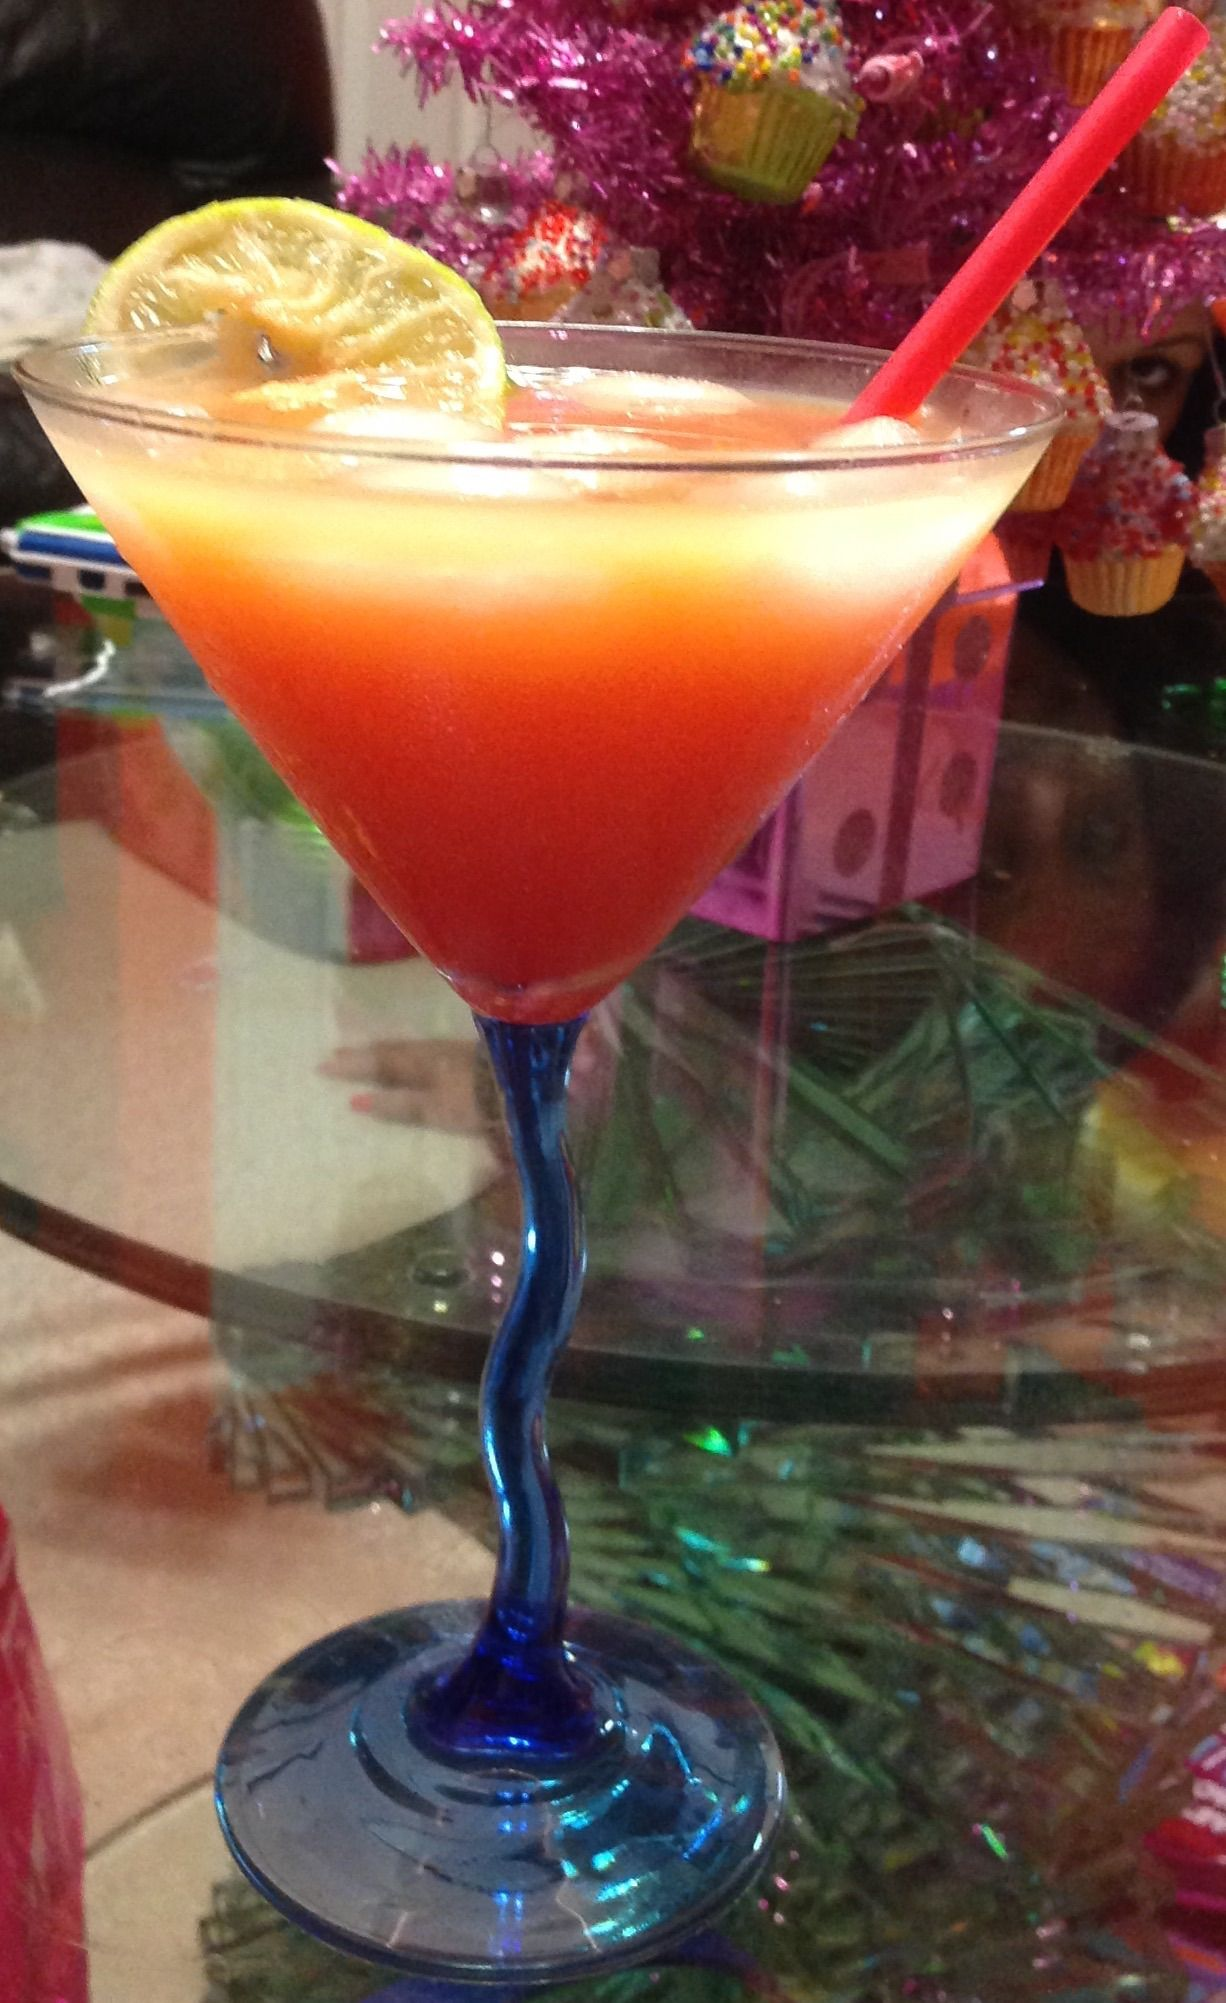 Mango orange tequila sunrise    1oz tequila  1/2oz Orange curacao   1/2oz triple sec  2oz Orange mango juice Splash of grenadine